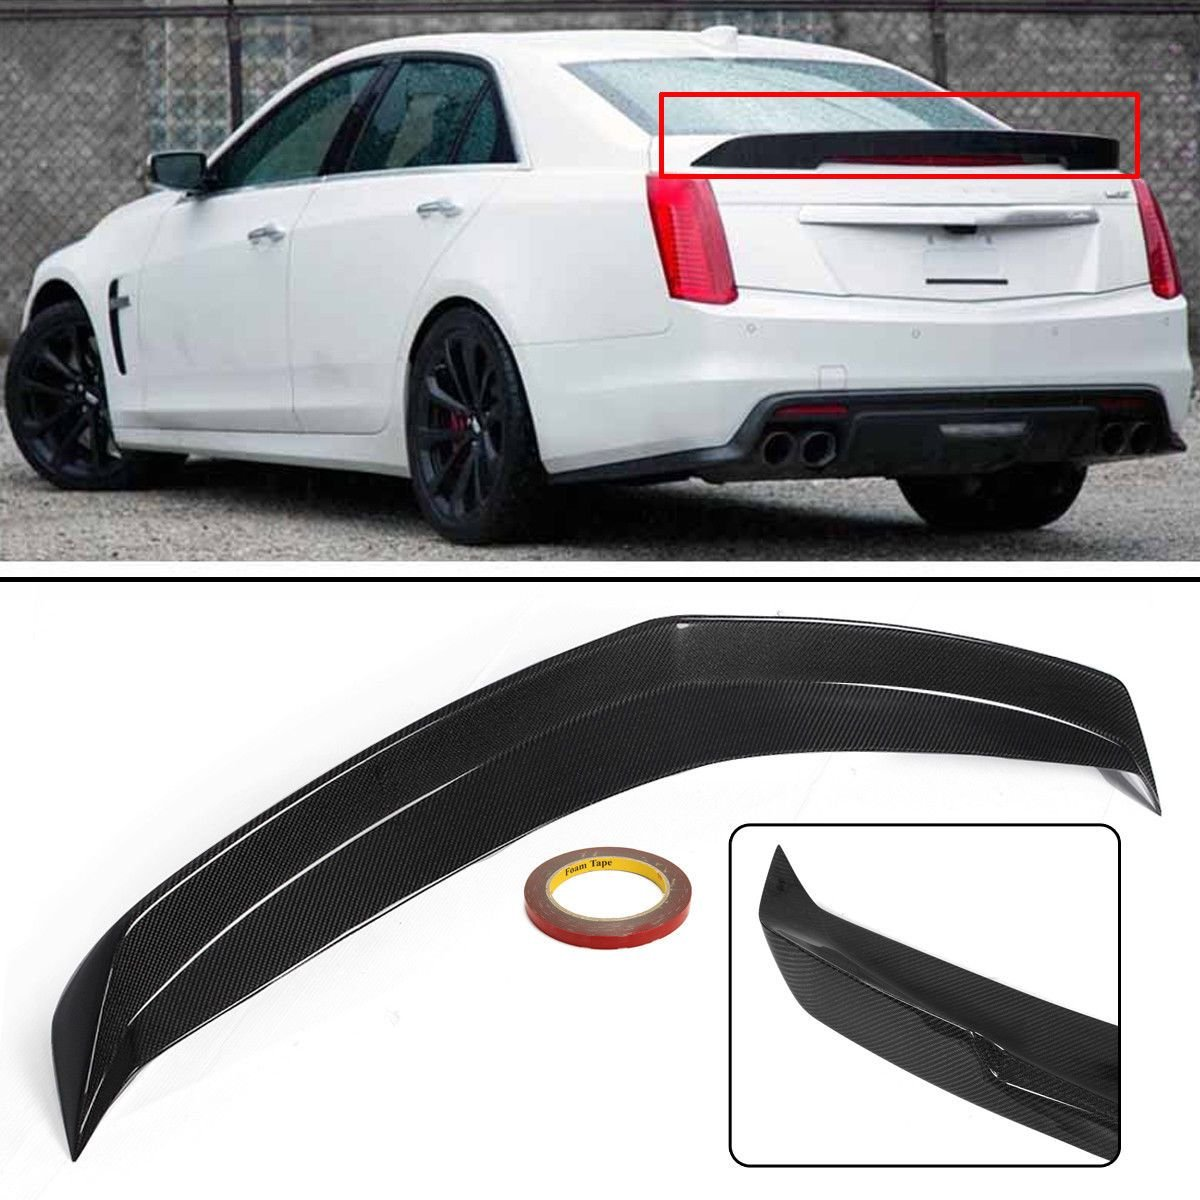 ProooAuto Carbon Fiber Rear Trunk Spoiler Wing Lip Fit for 16-Up Cadillac CTS-V